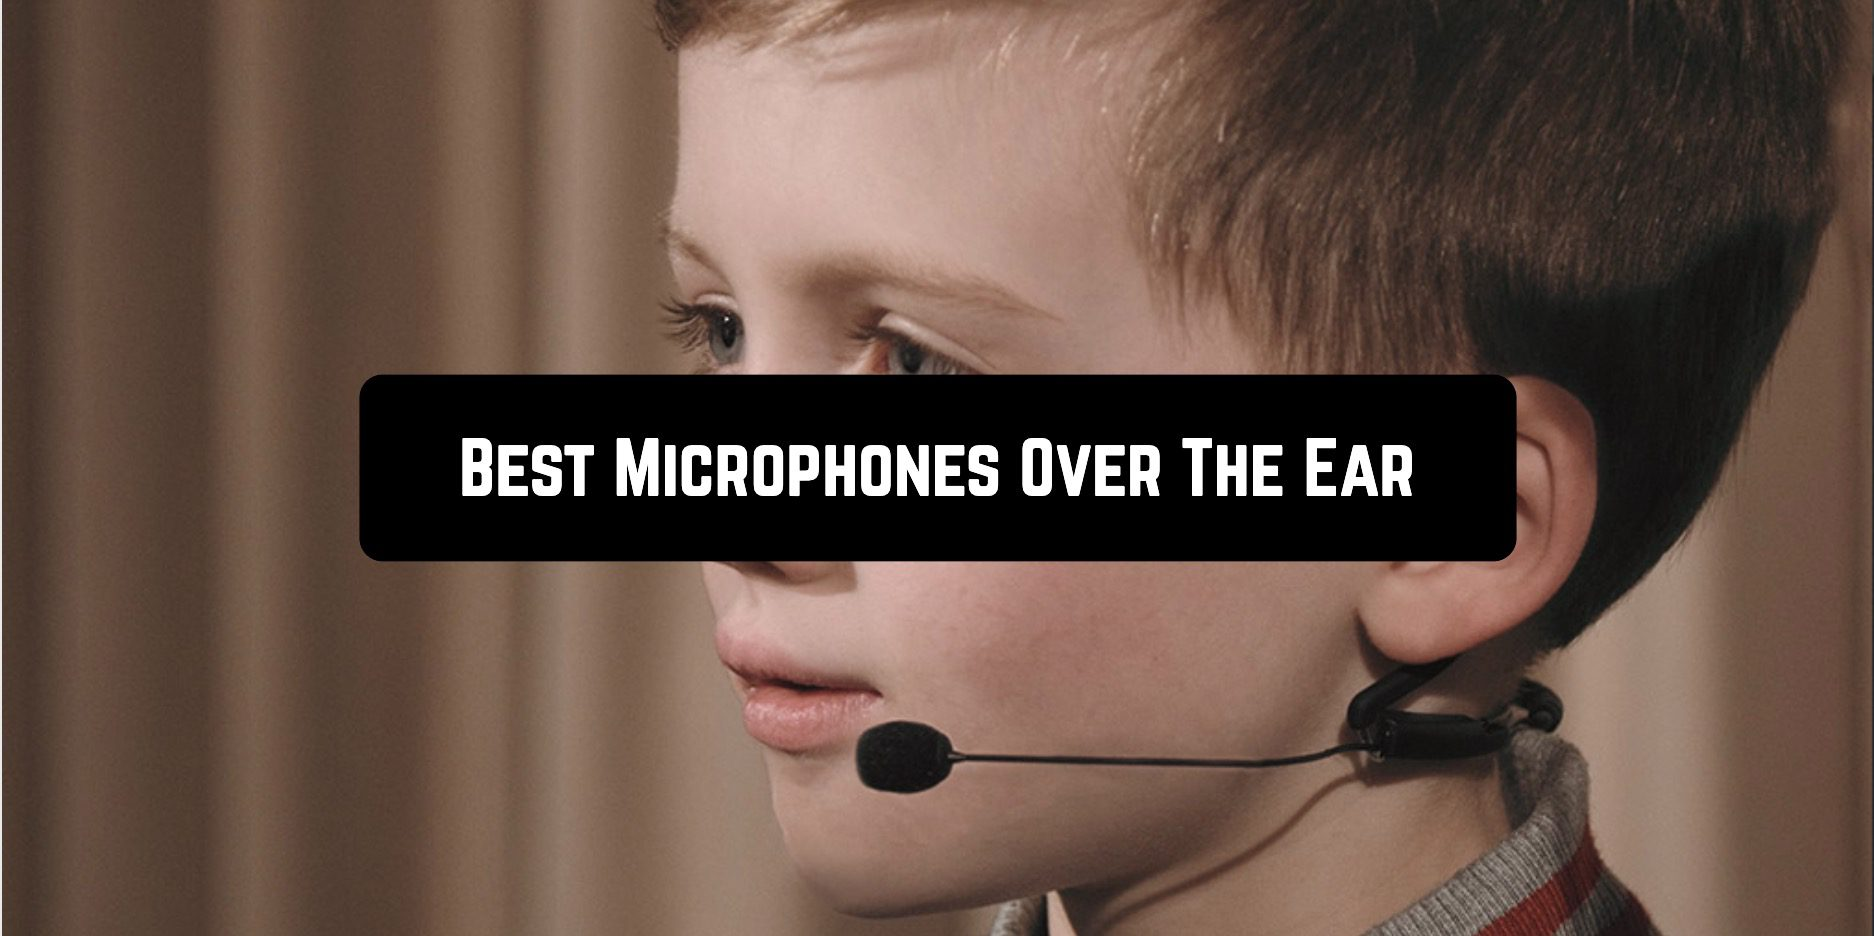 Best Microphones Over The Ear